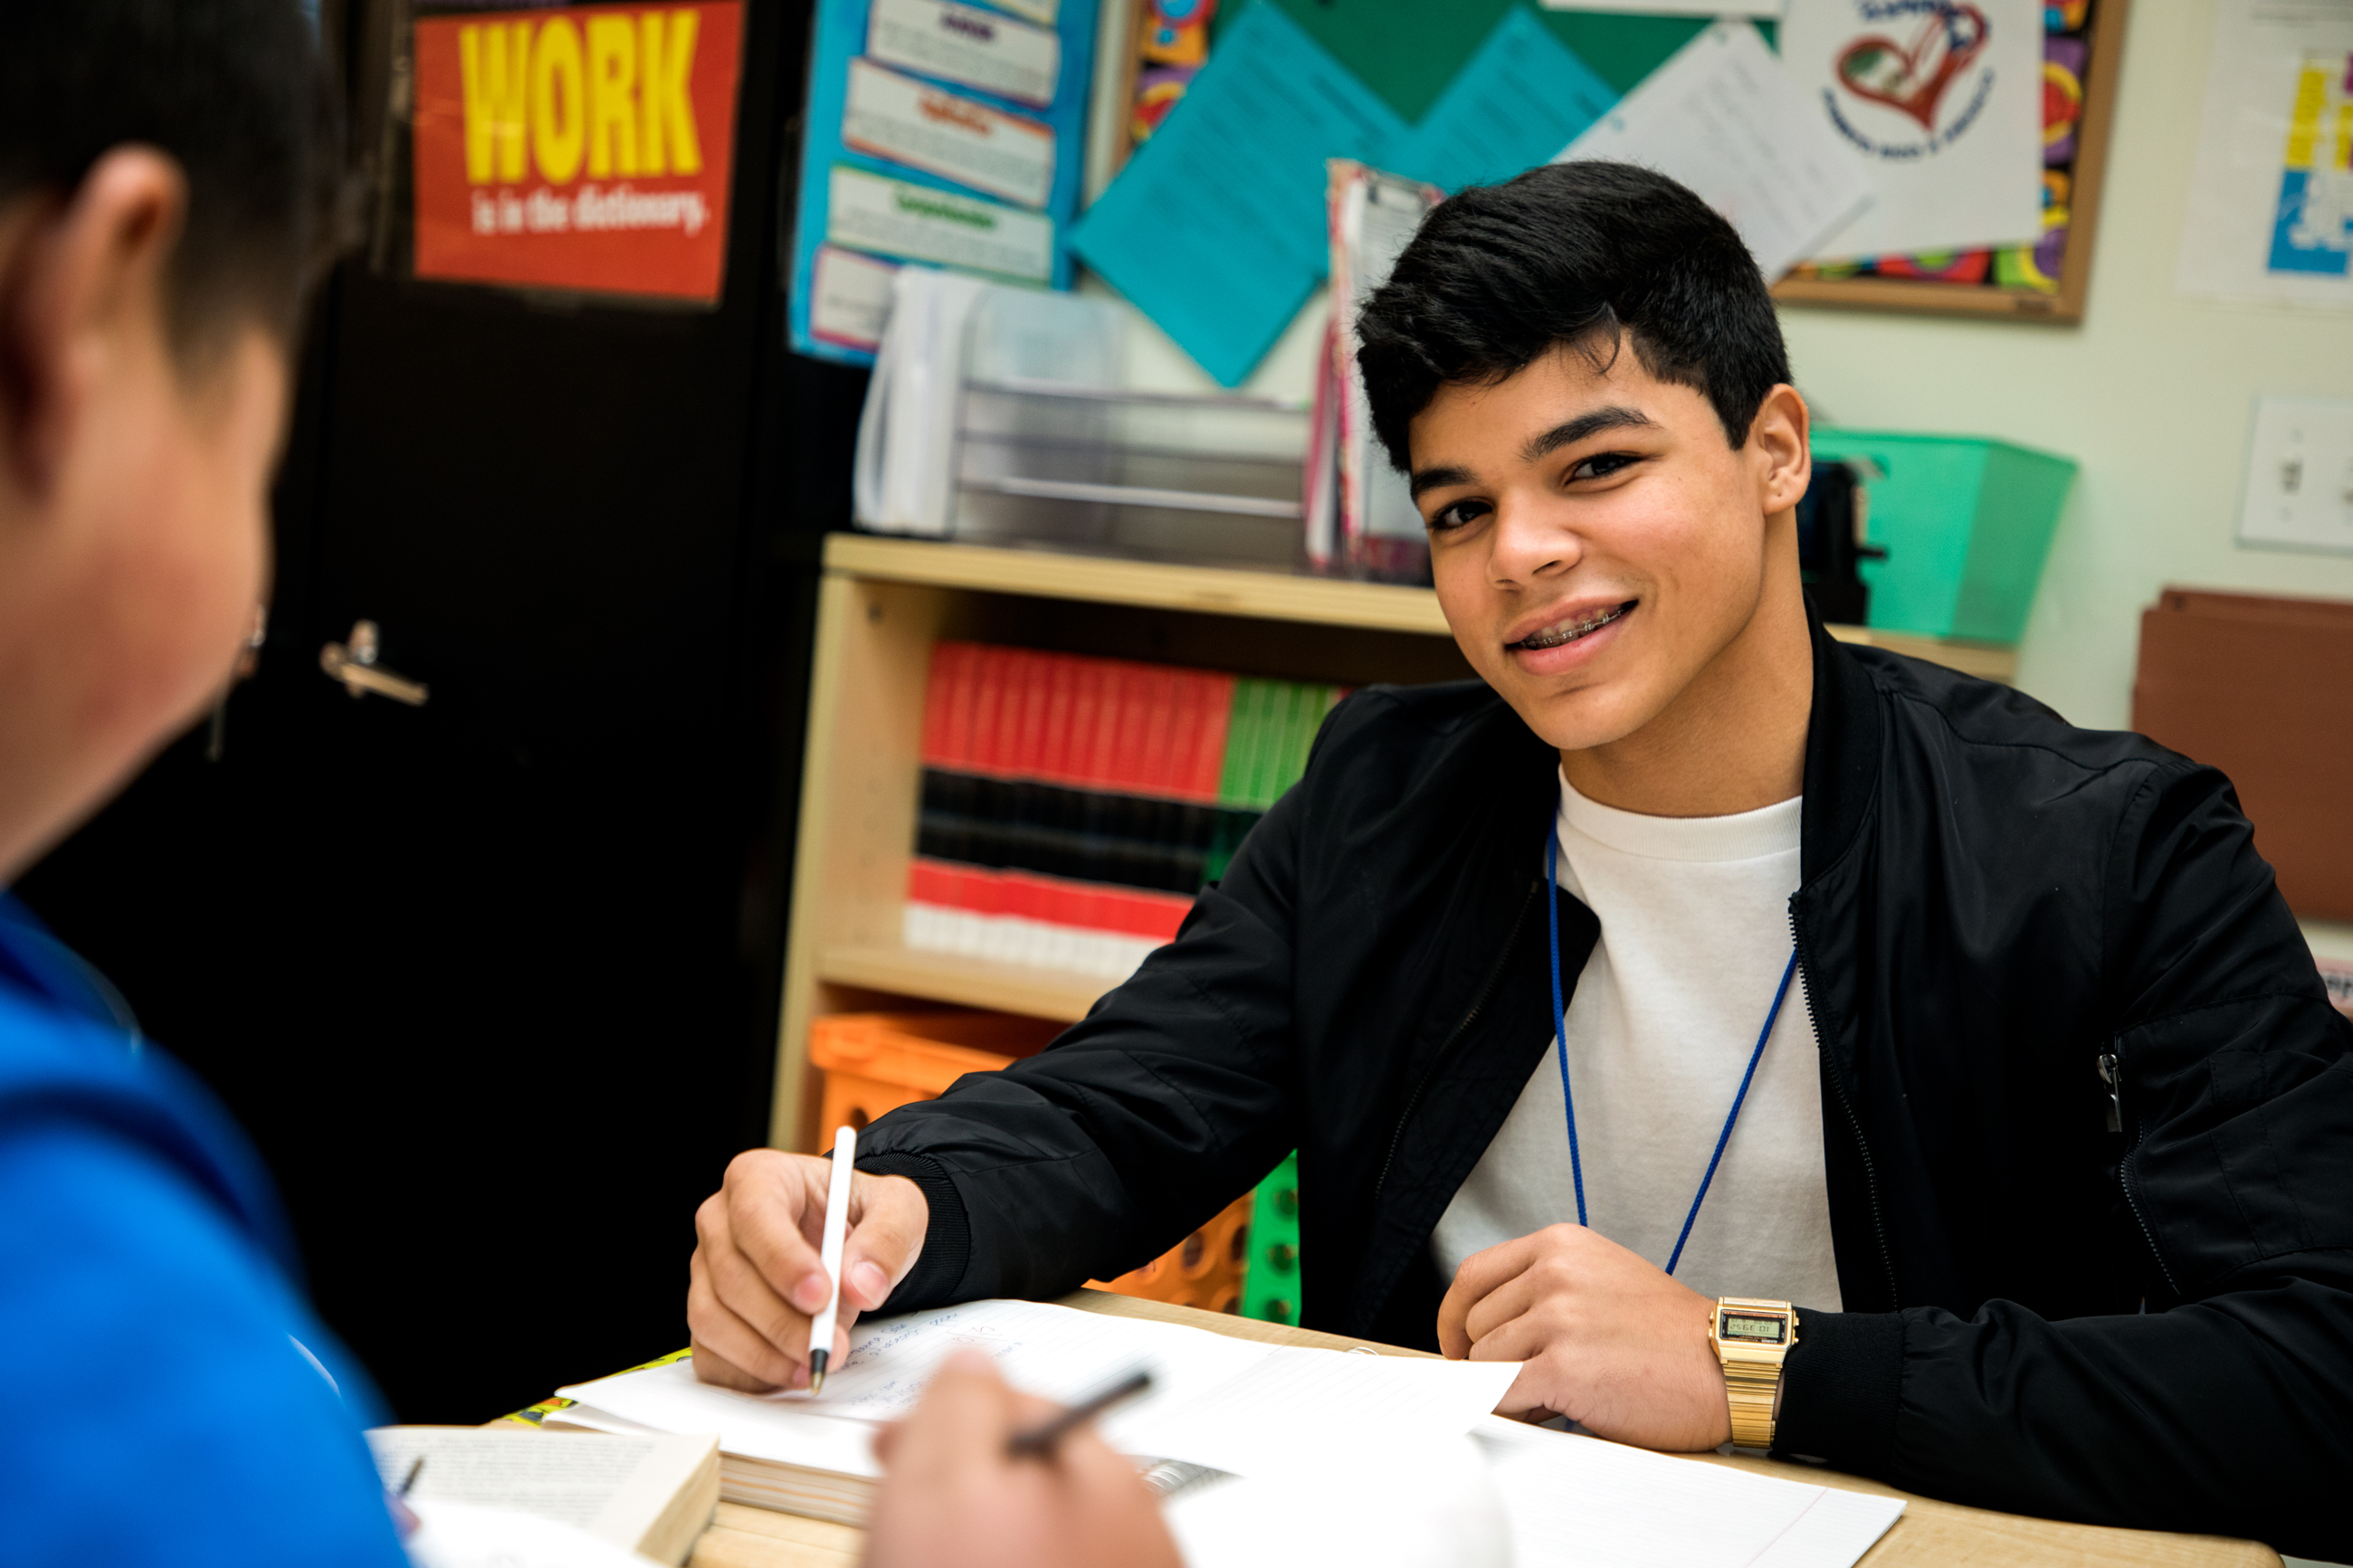 Christian Cartagena came to Chicago from Puerto Rico after Hurricane Maria. He now attends ASPIRA Early College High School on the Northwest Side. (WBEZ/Andrew Gill)